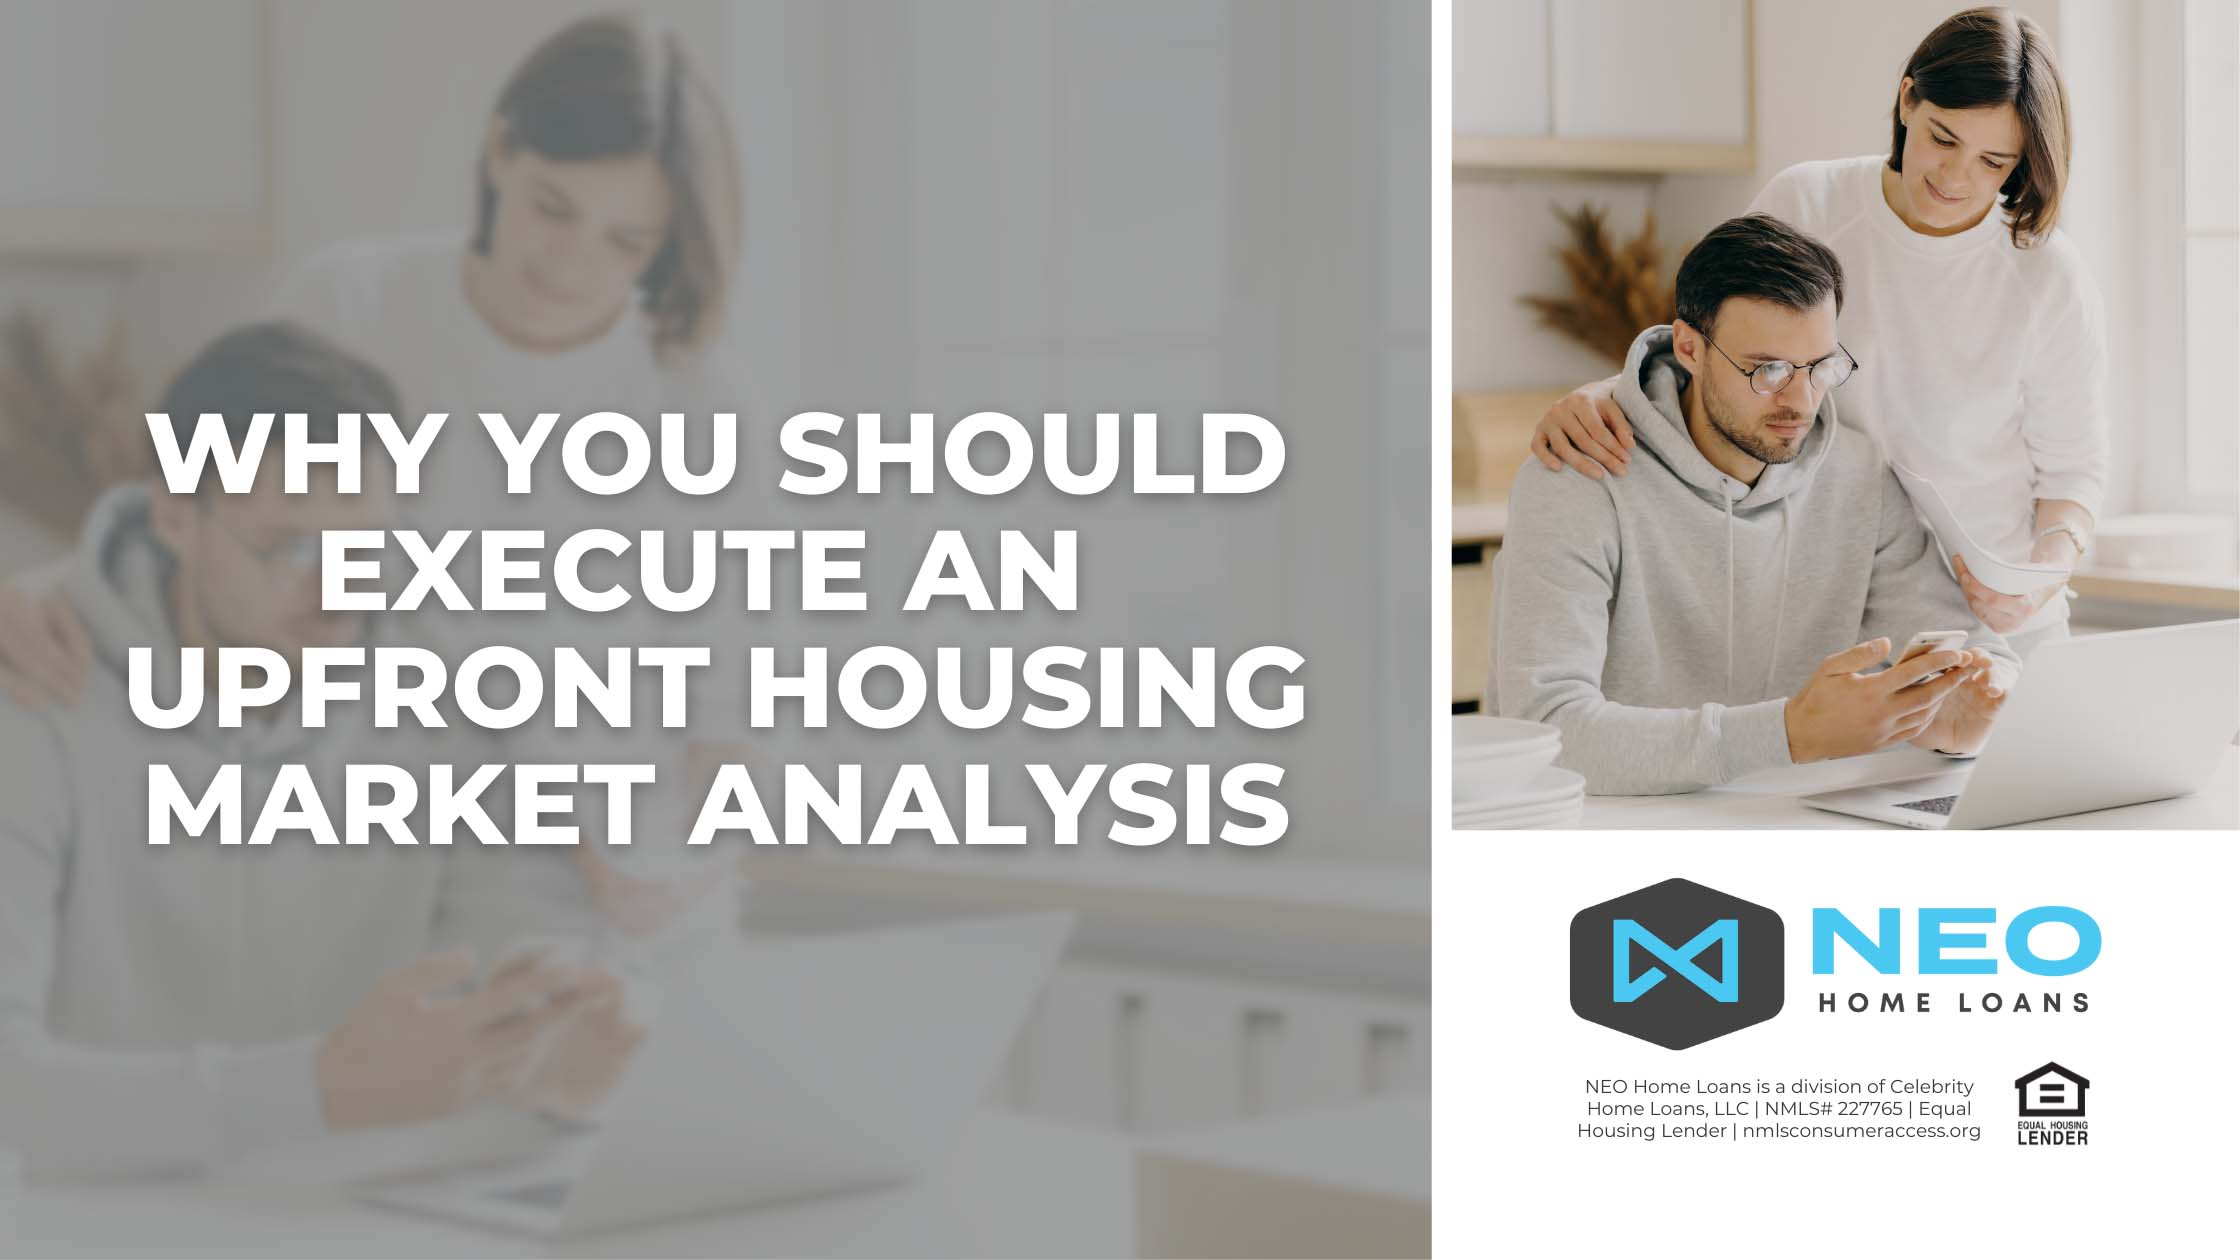 Why You Should Execute An Upfront Housing Market Analysis